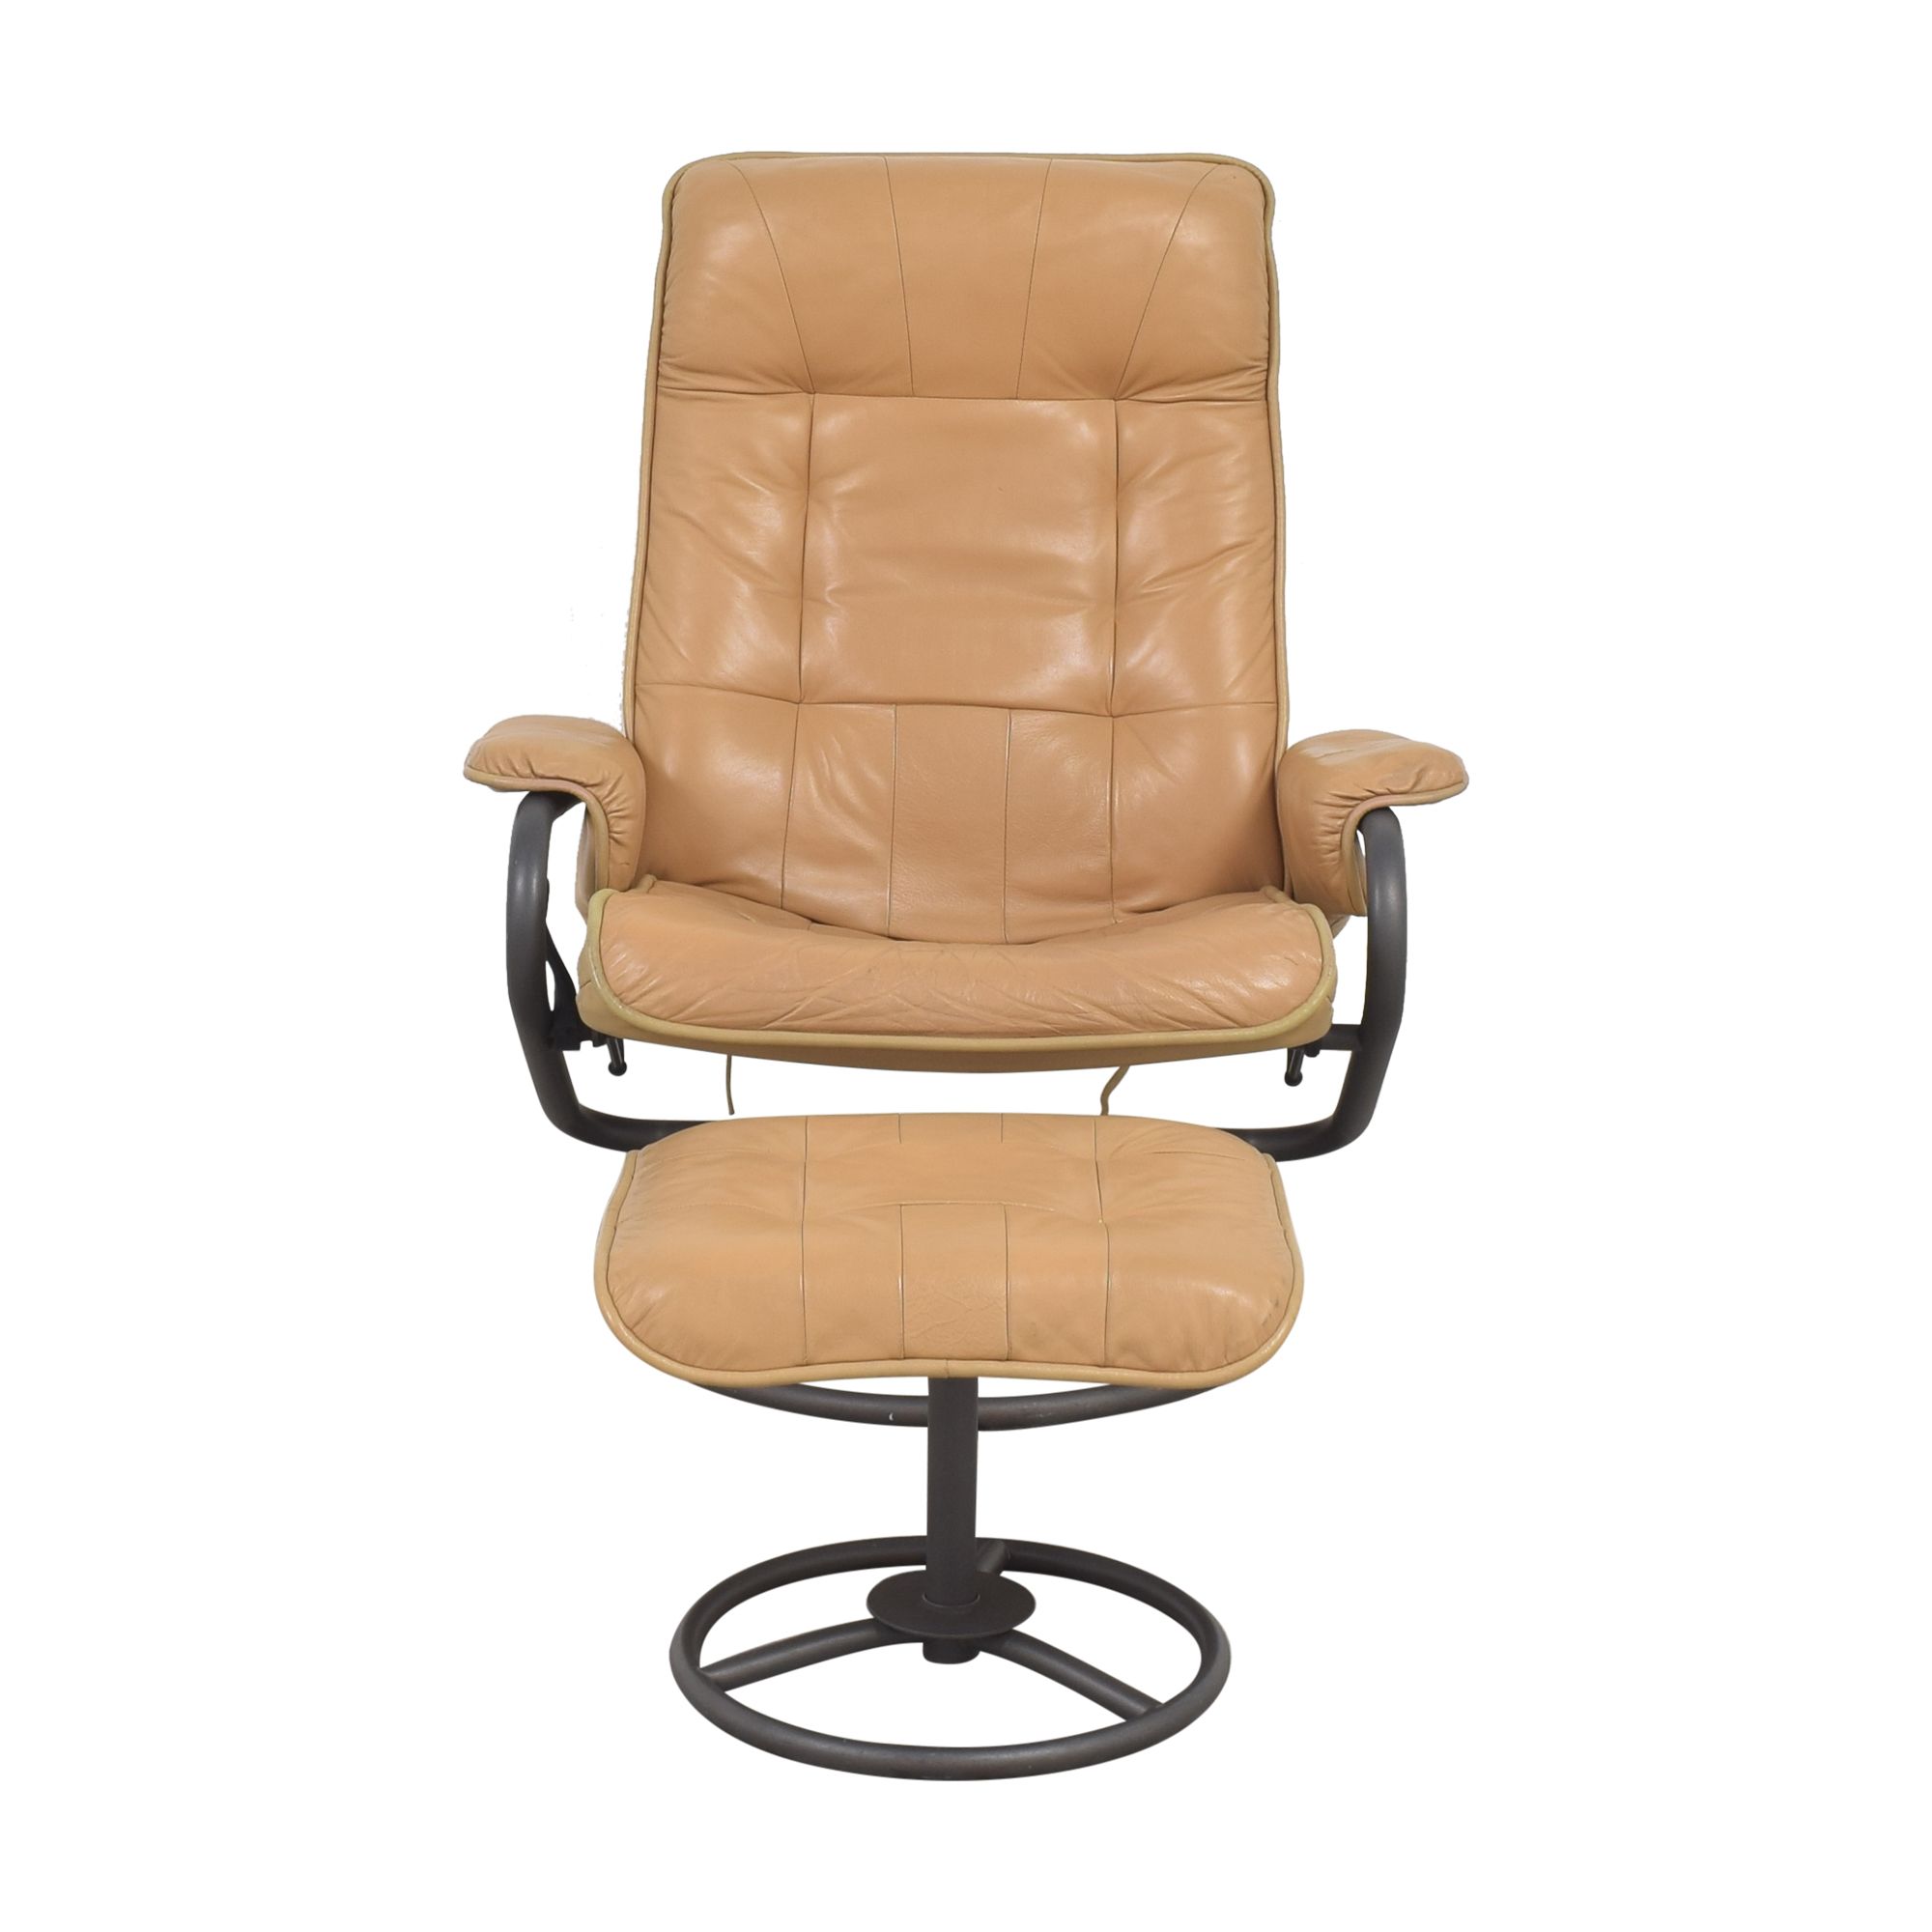 ChairWorks ChairWorks Recliner with Ottoman discount